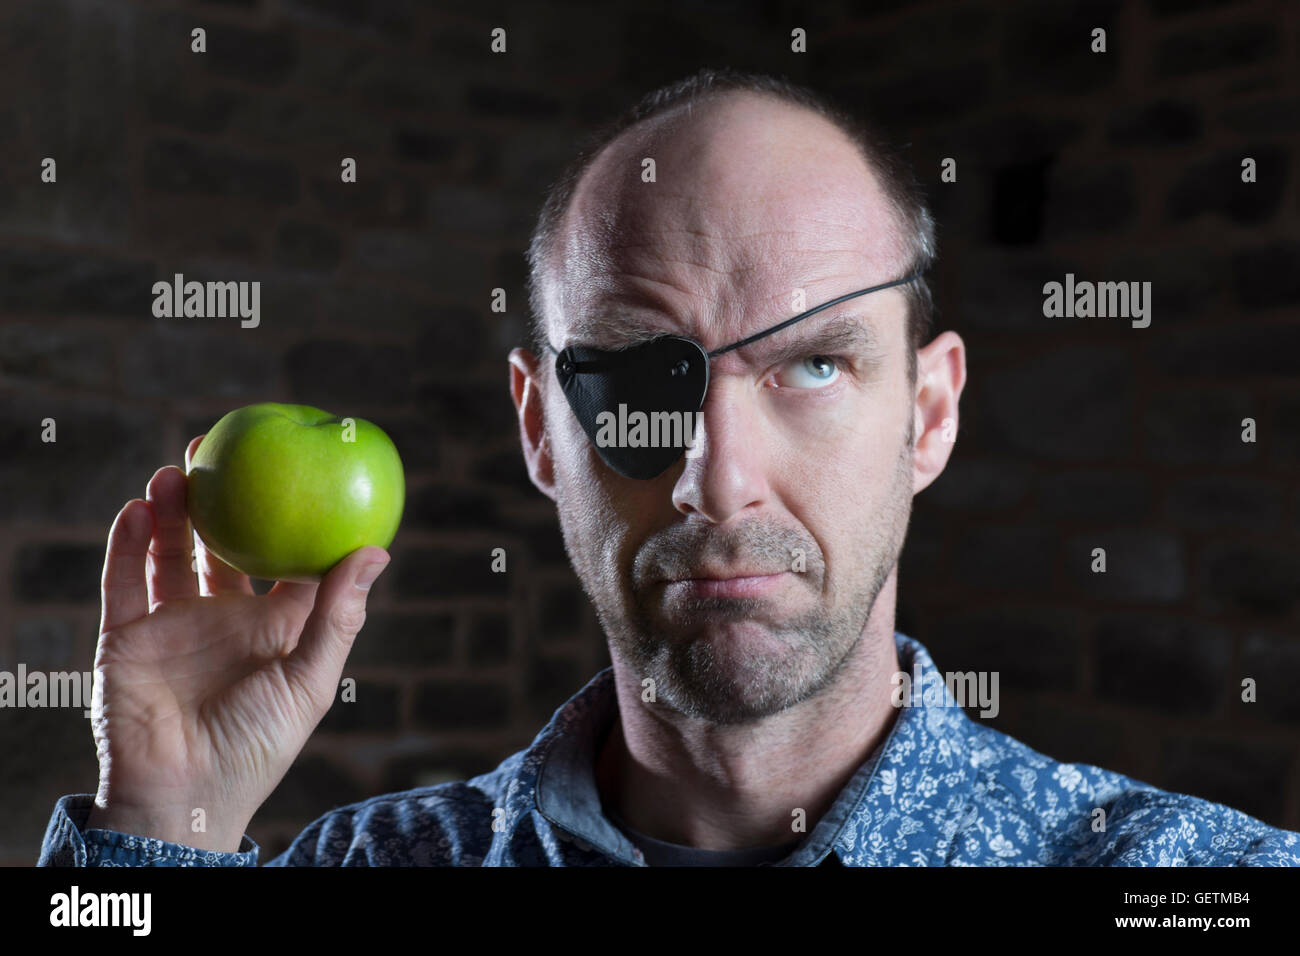 Apple eye patch confusion. - Stock Image